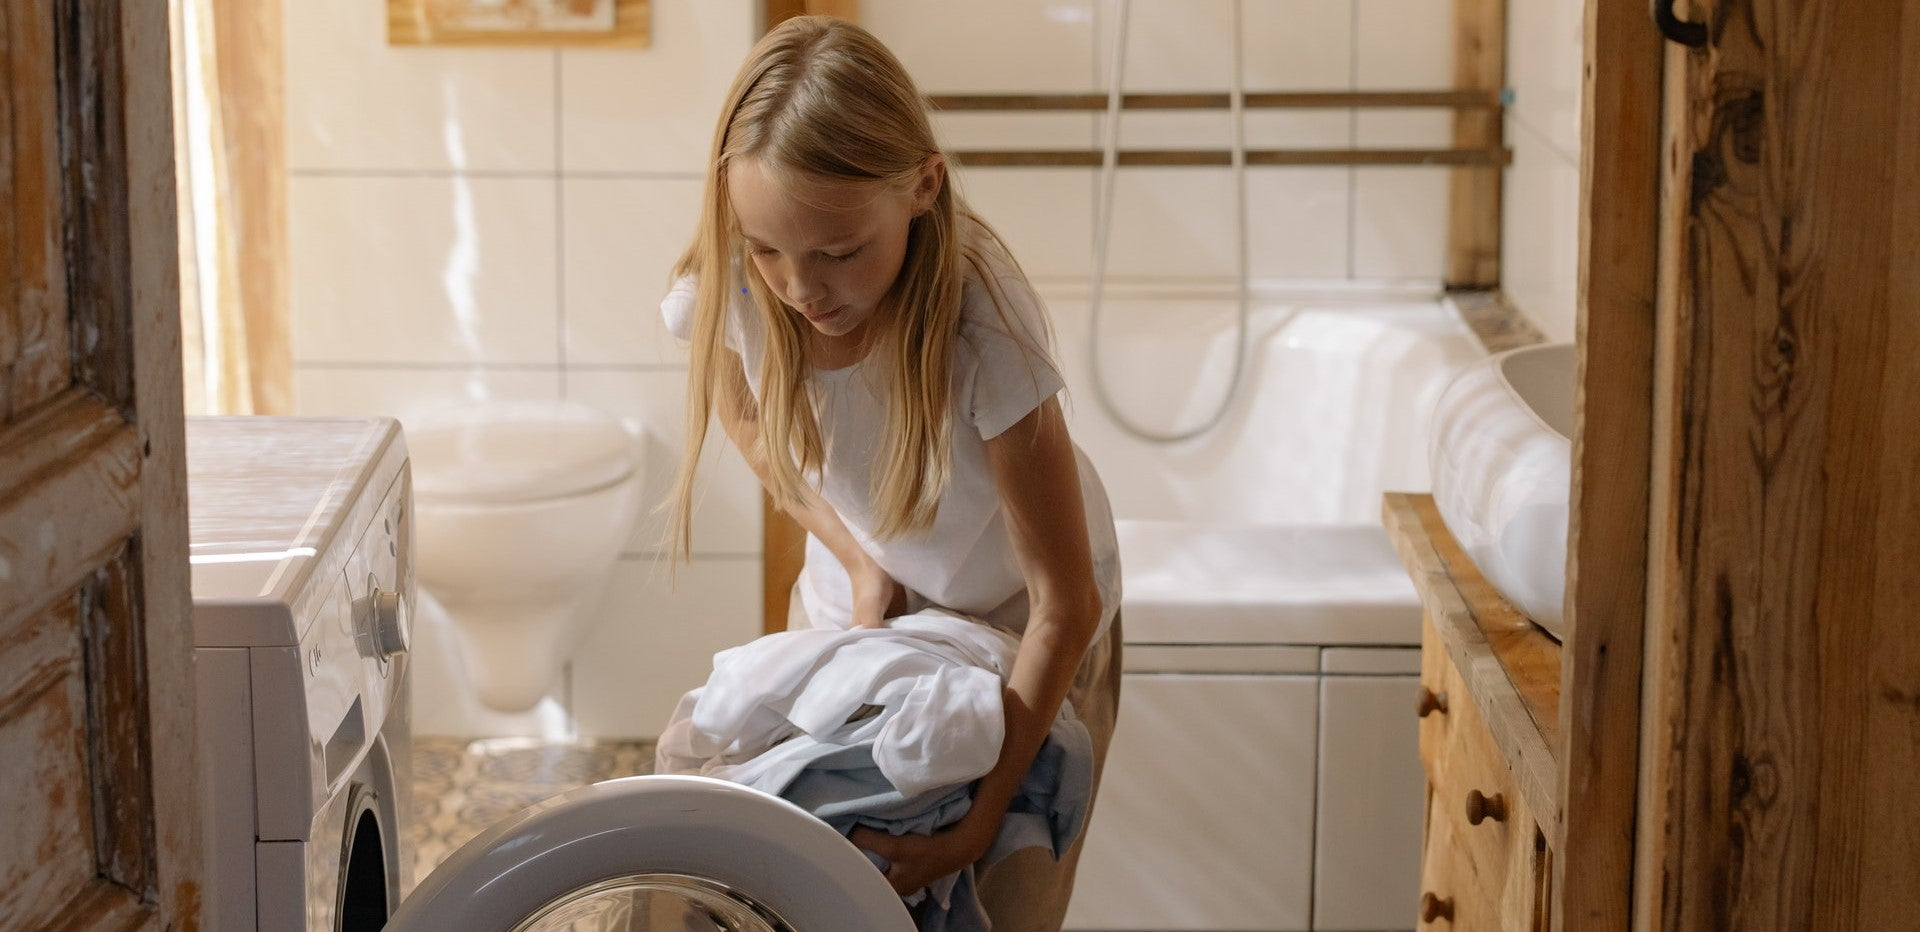 girl putting clothes into dryer